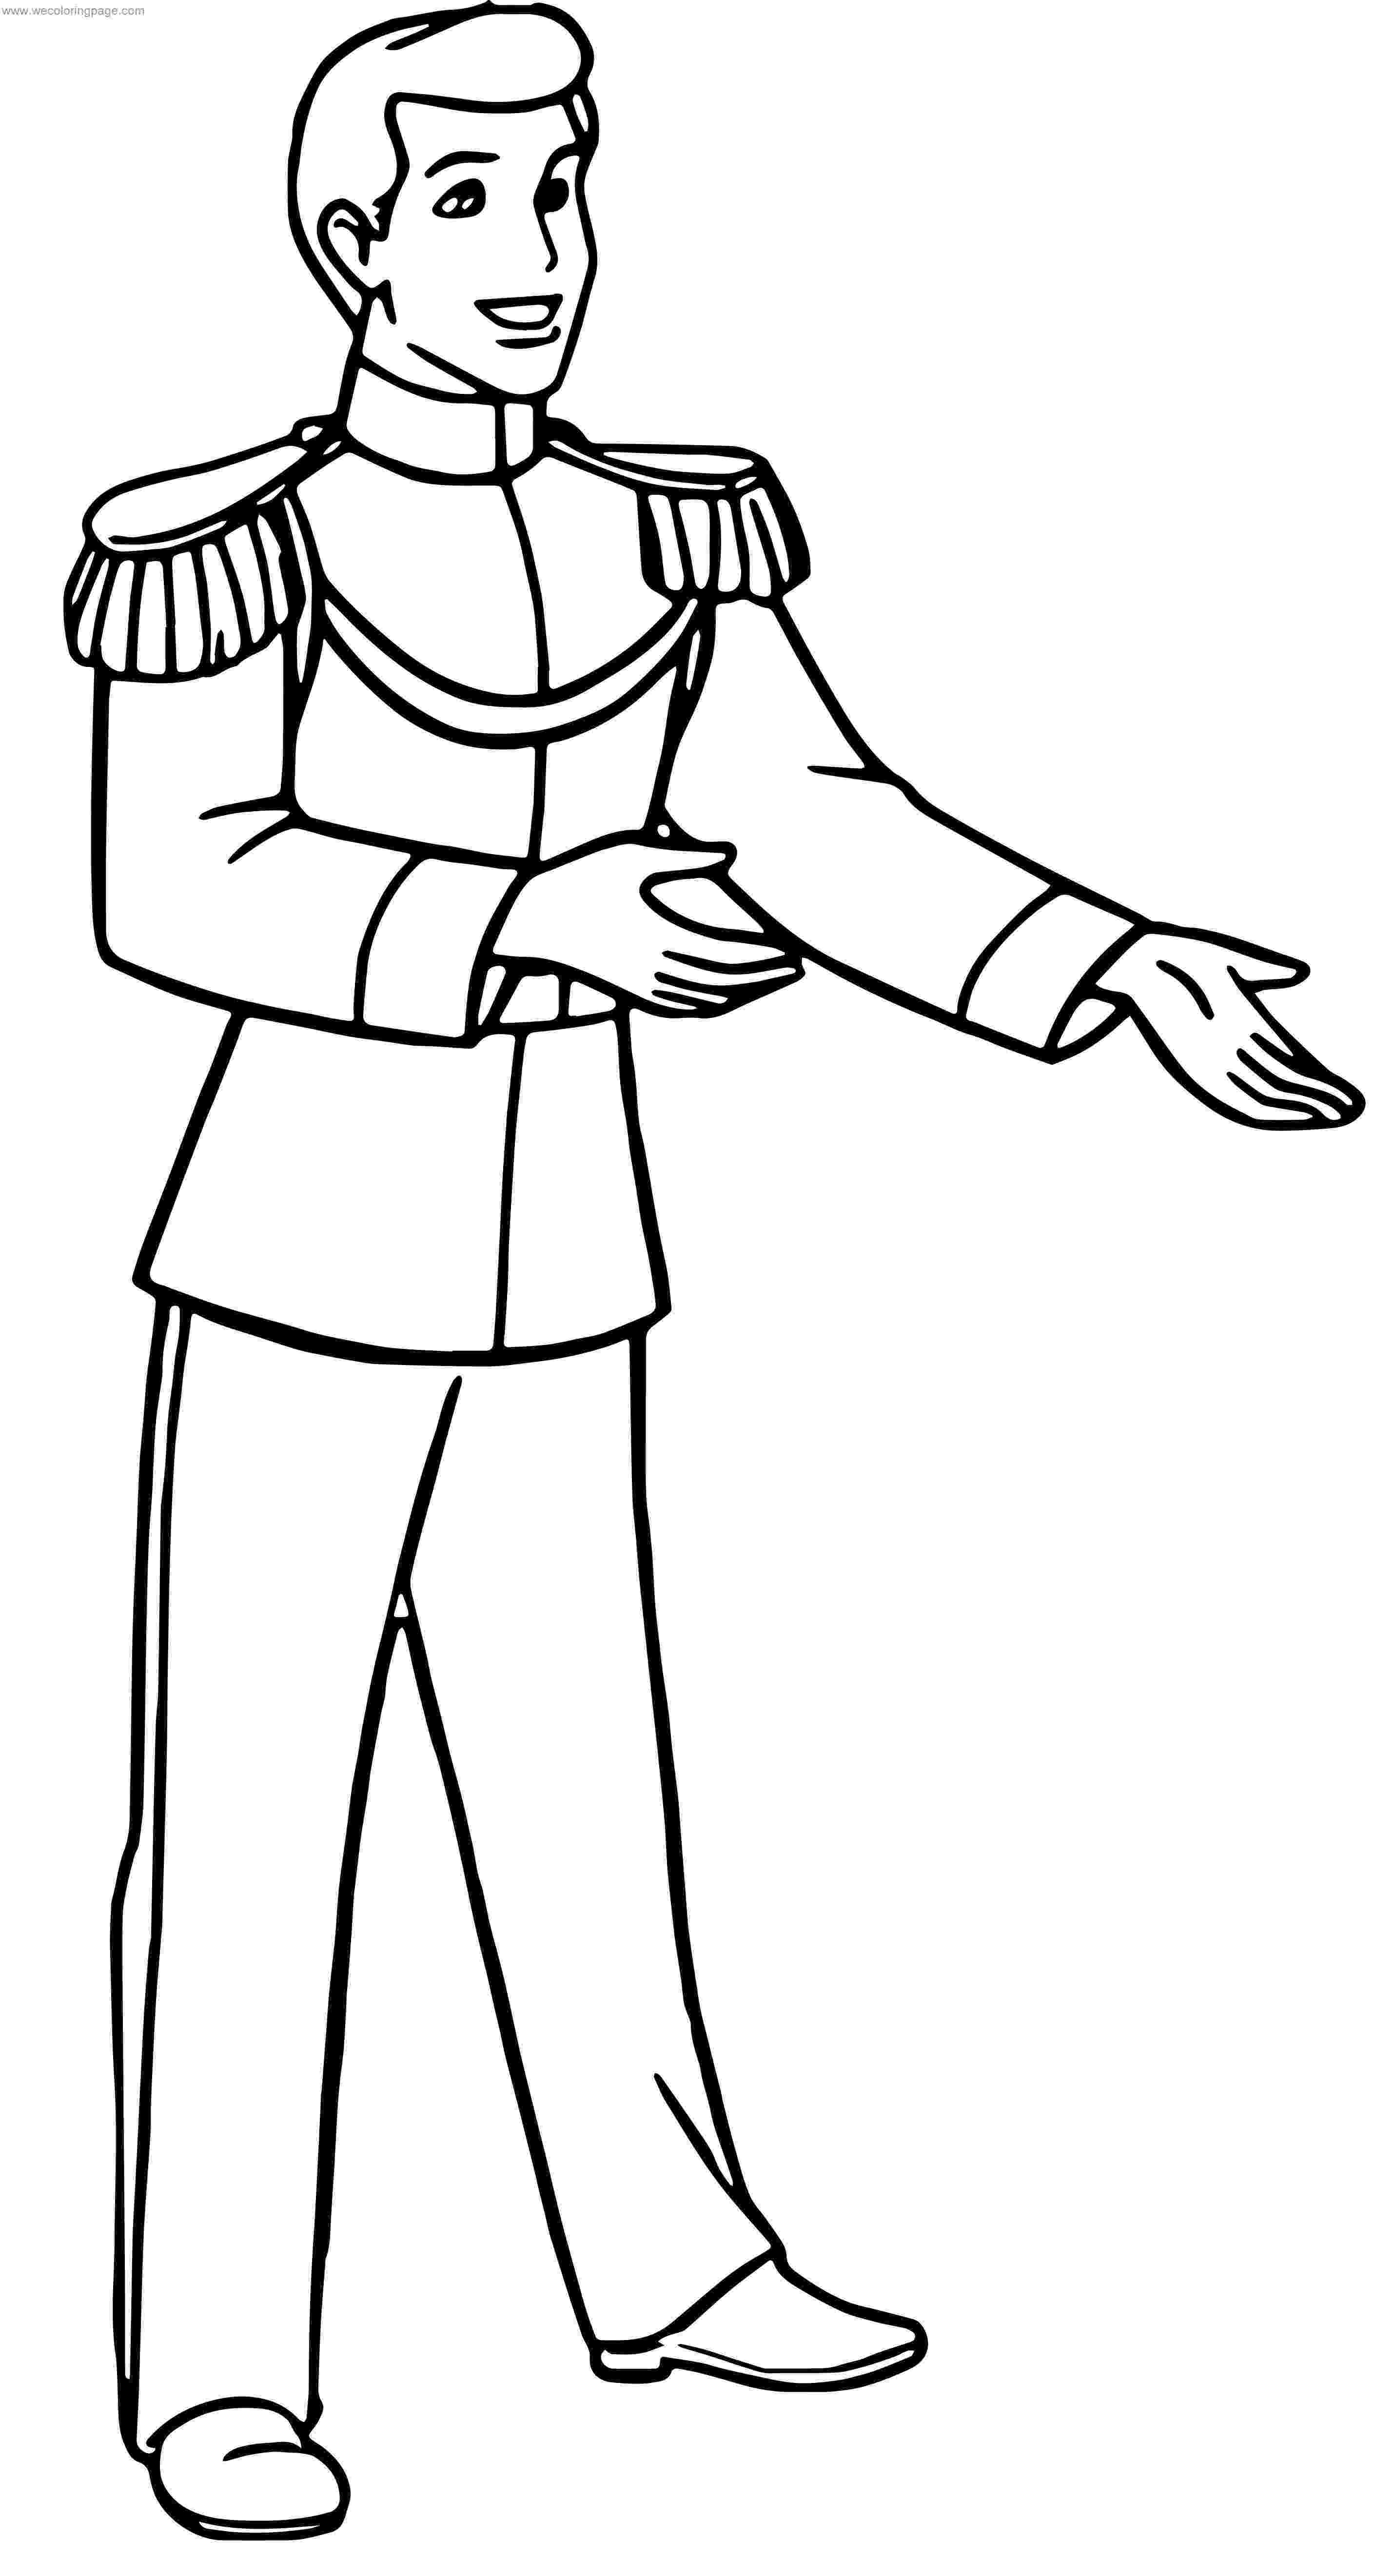 prince colouring prince philip coloring pages download and print for free prince colouring